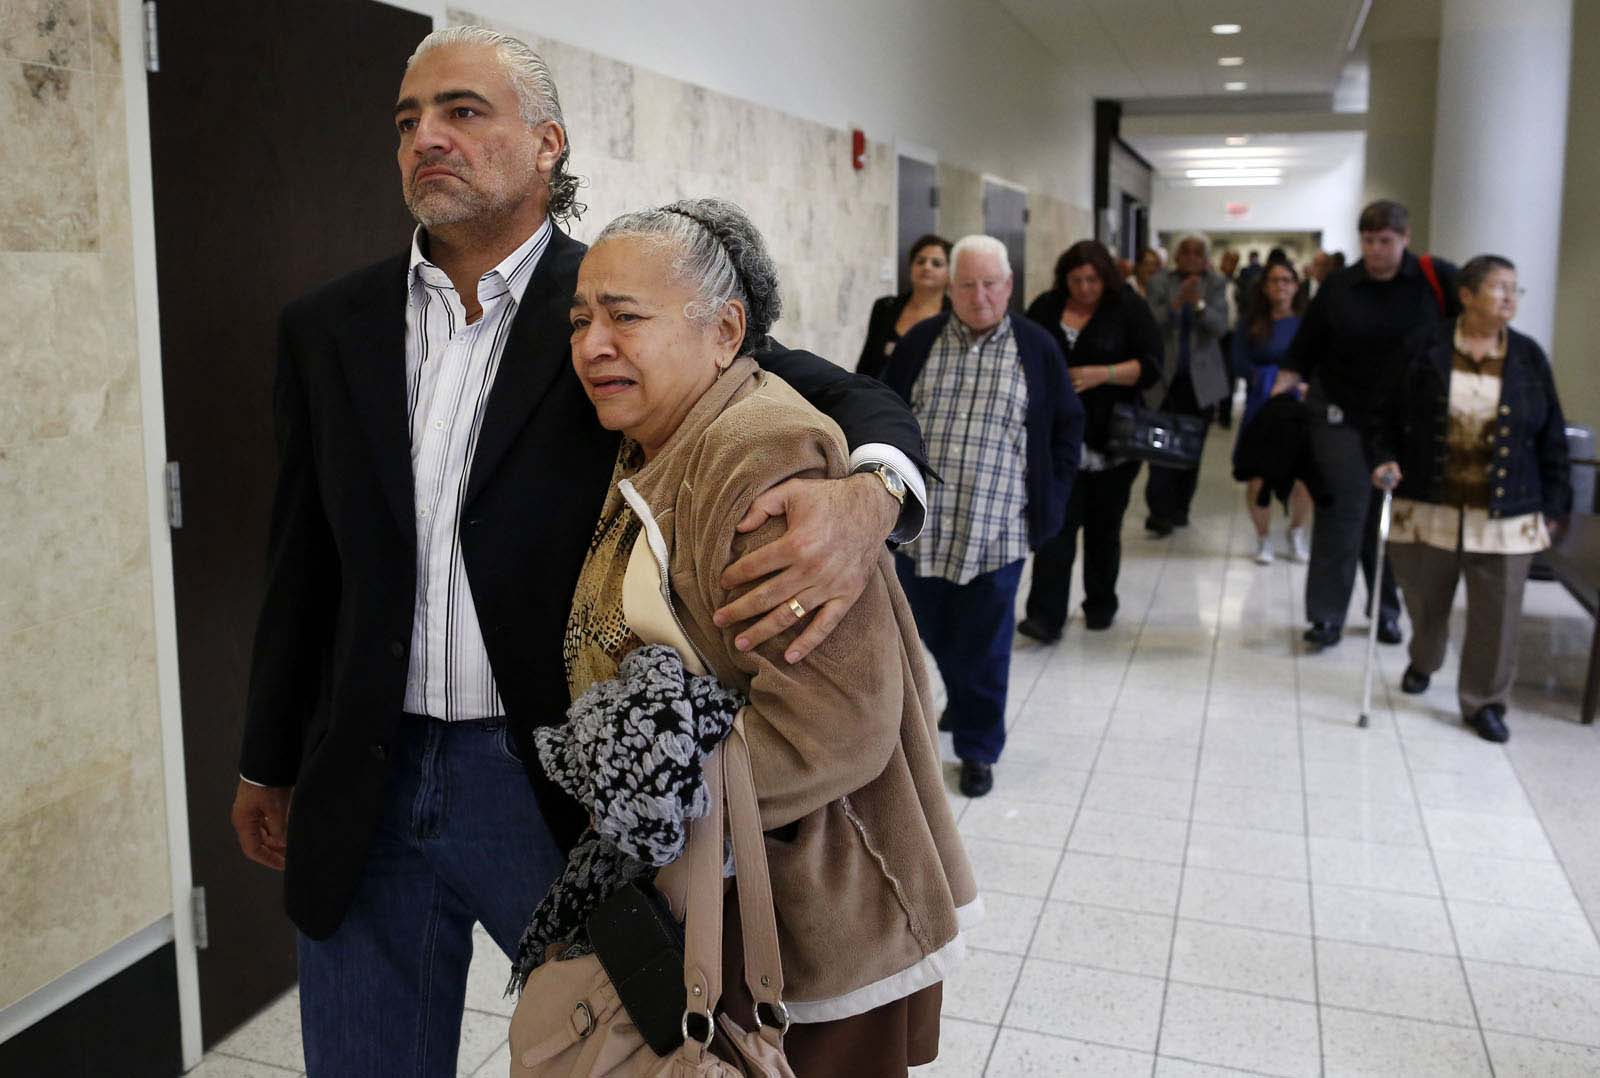 Diego Aguilar, the uncle of slain University of Florida student Christian Aguilar, comforts his mother Maricela Aguilar, Christian's grandmother, as the family leaves the courtroom for a lunch break during Bravo's murder trial in courtroom 1B of the Alachua County Criminal Justice Center Friday, August 15, 2014.  Bravo is accused of killing University of Florida student Christian Aguilar.  (Doug Finger/The Gainesville Sun/Pool)